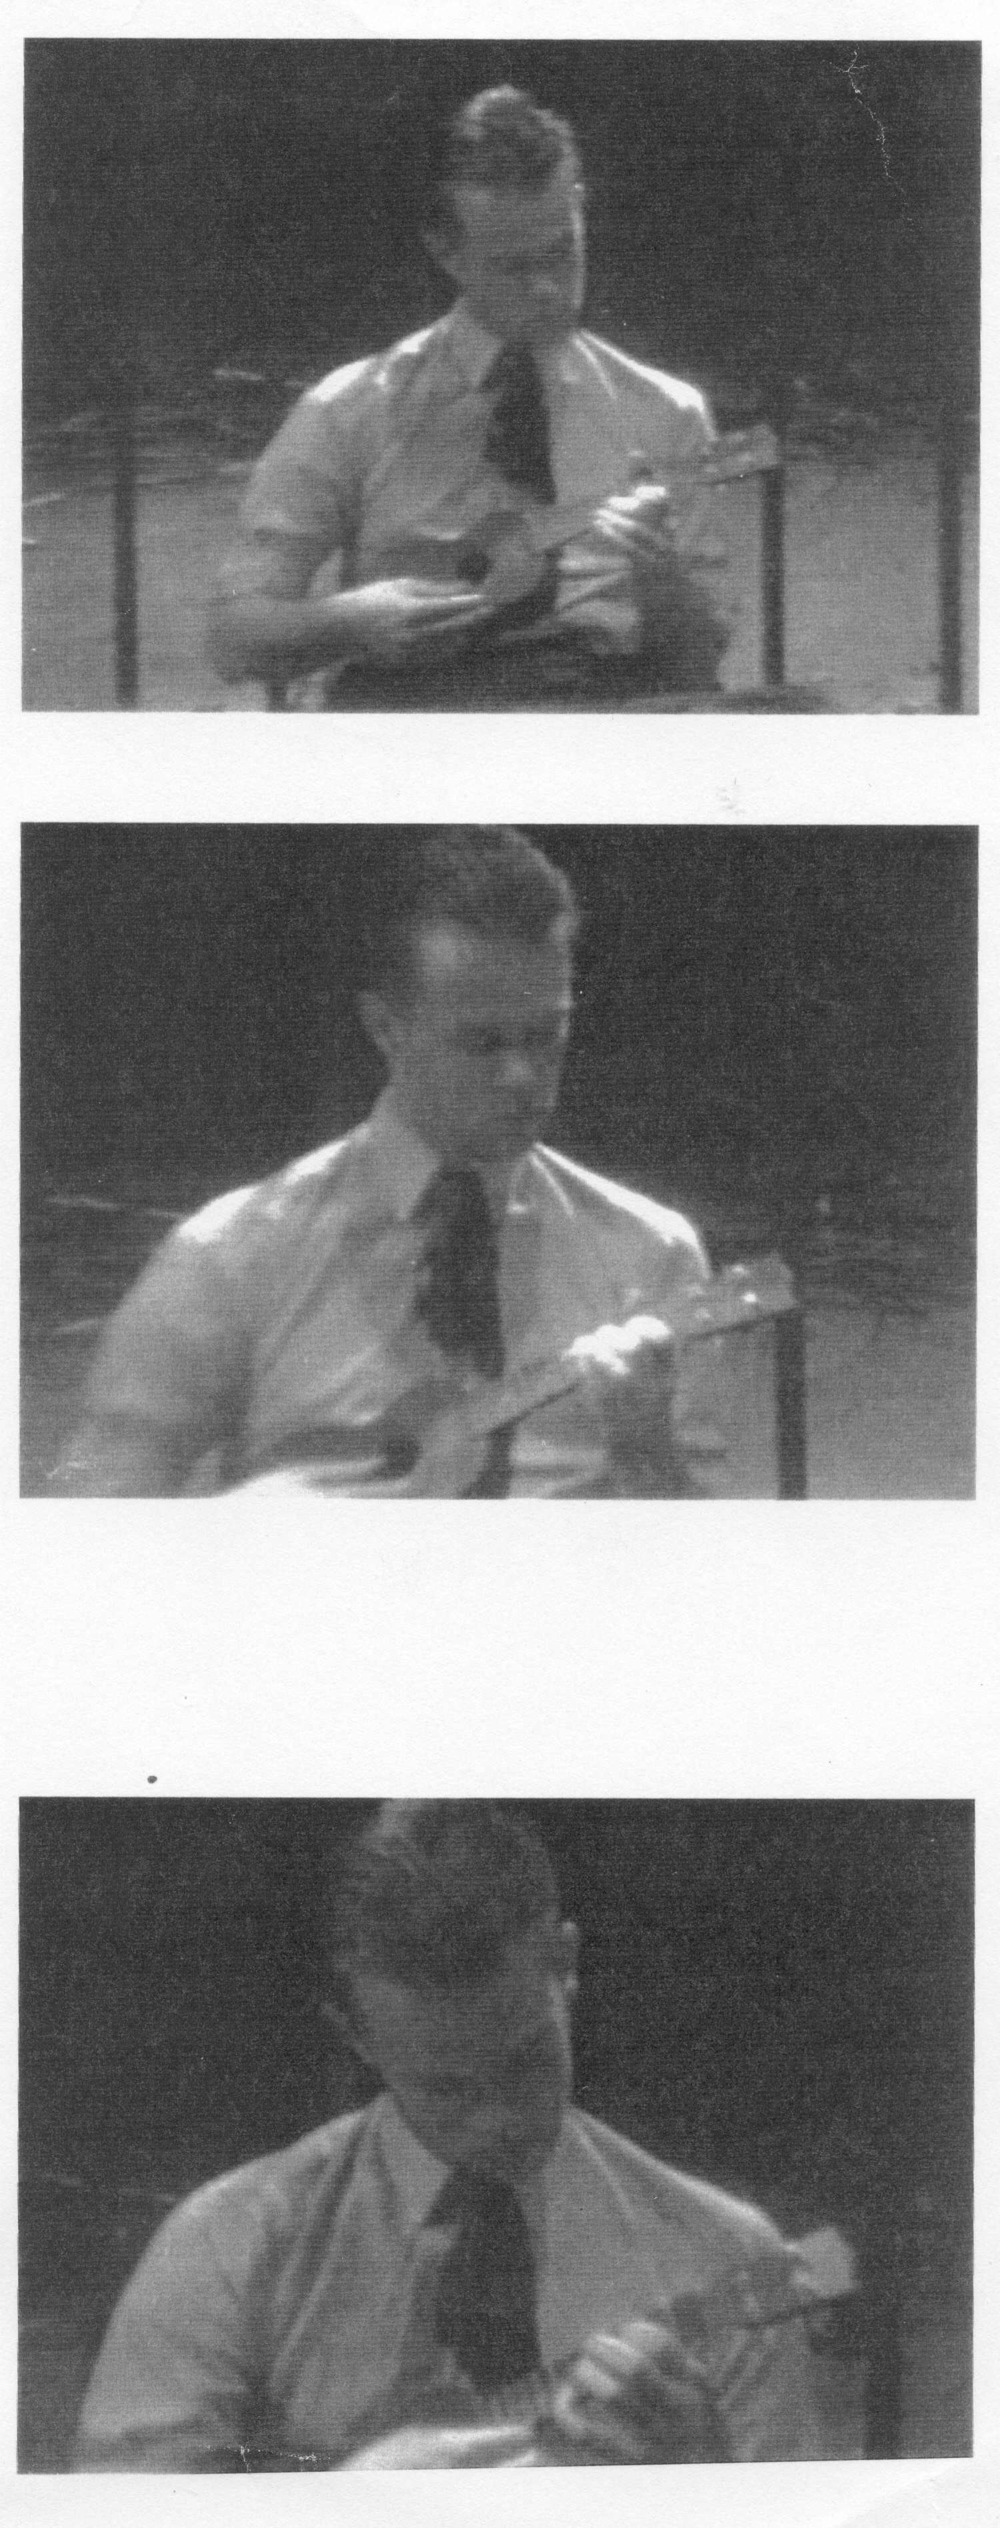 Playing ukulele, Uses Of Enchantment, London, 1987